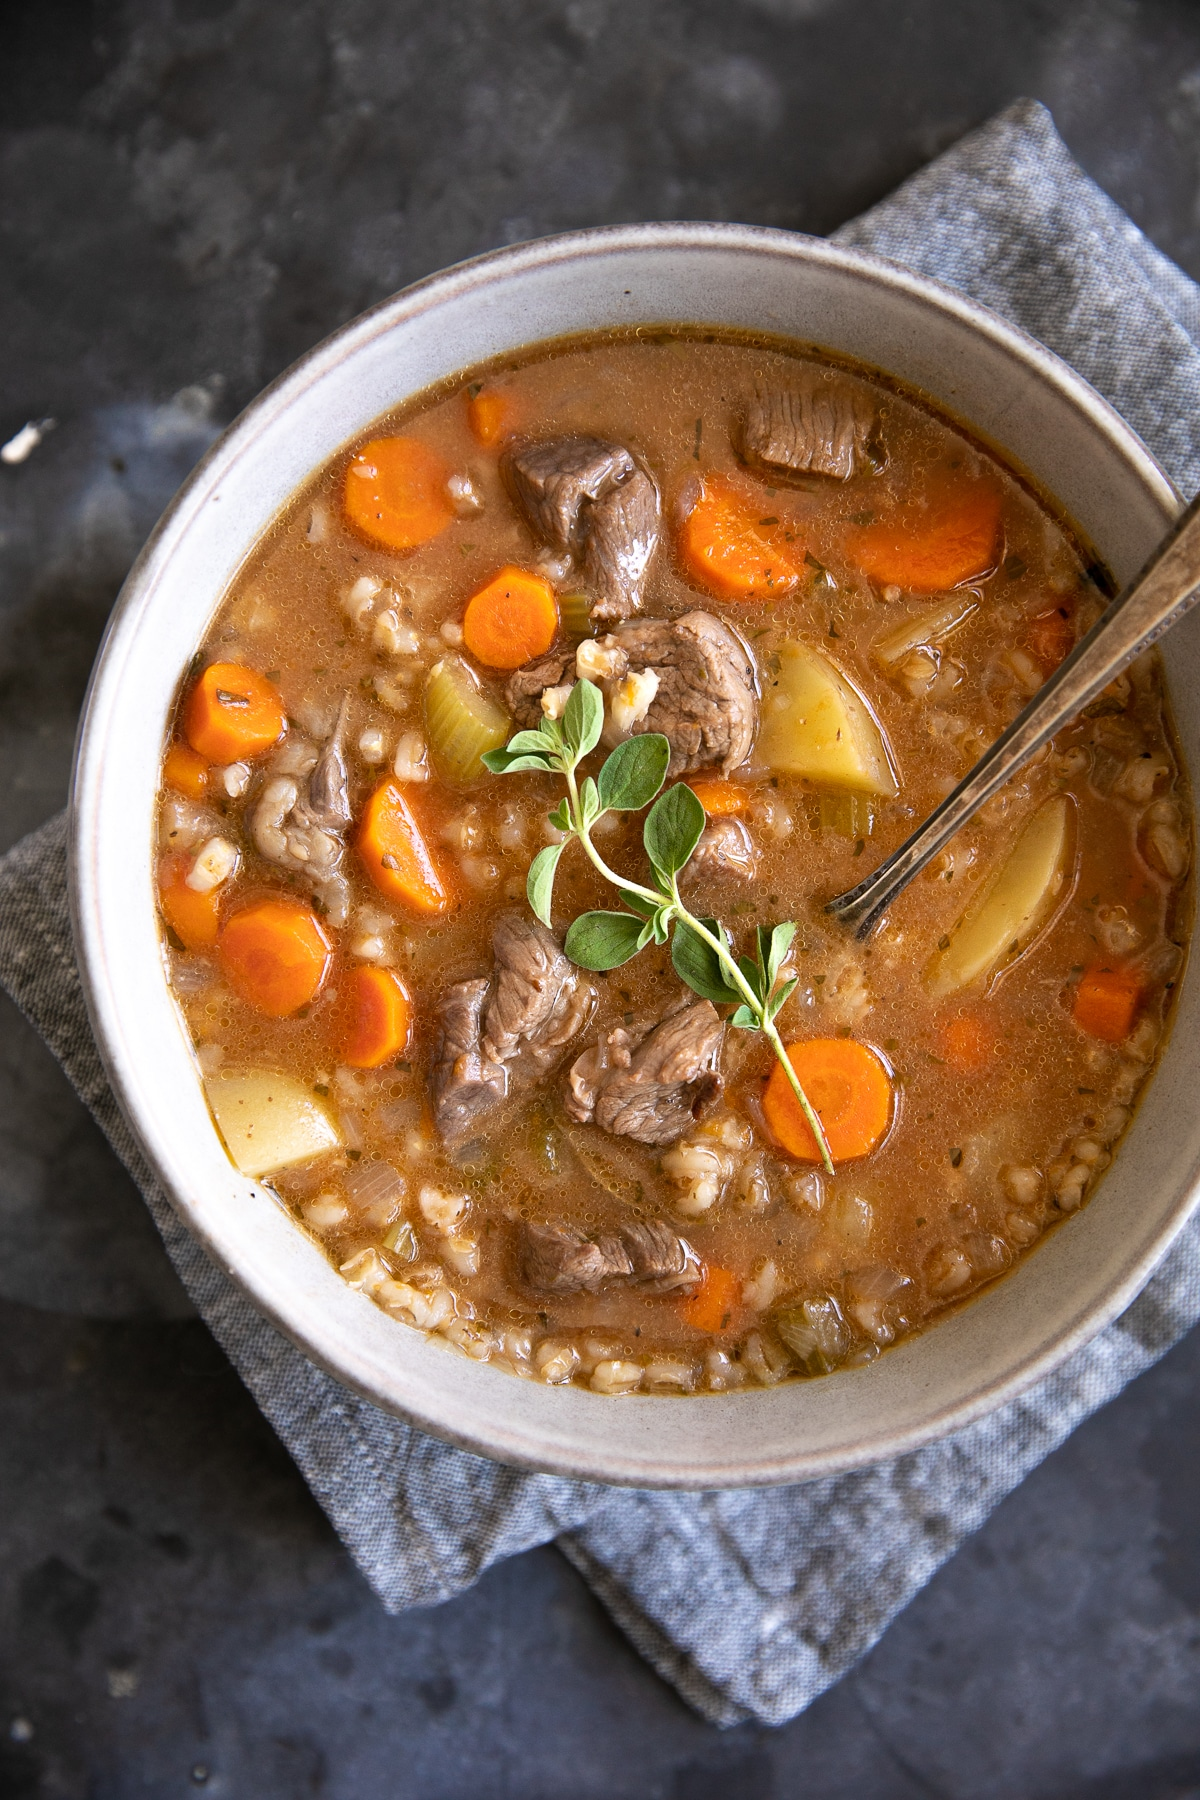 Overhead image of a large soup bowl filled with beef barley soup topped with fresh oregano.